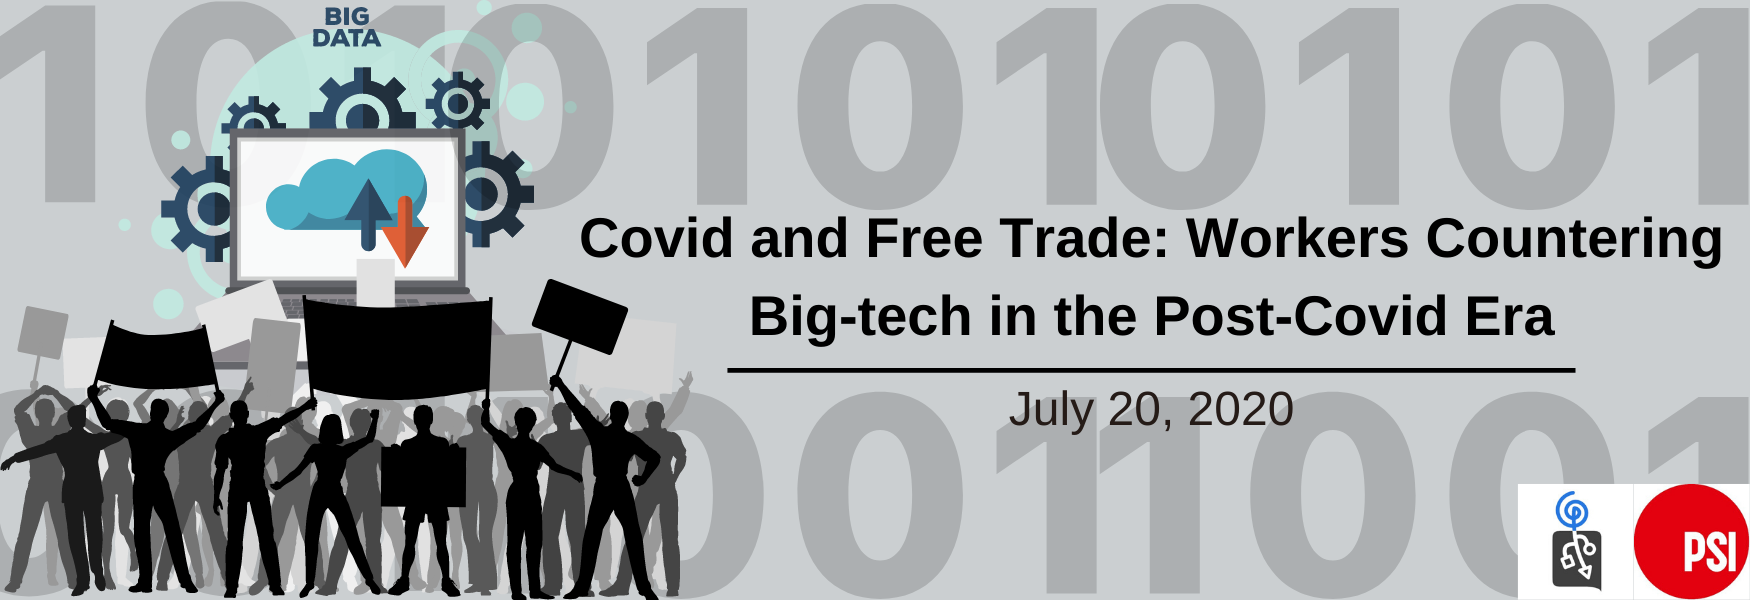 Covid and Free Trade: Workers Countering Big-Tech in the Post-Covid Era